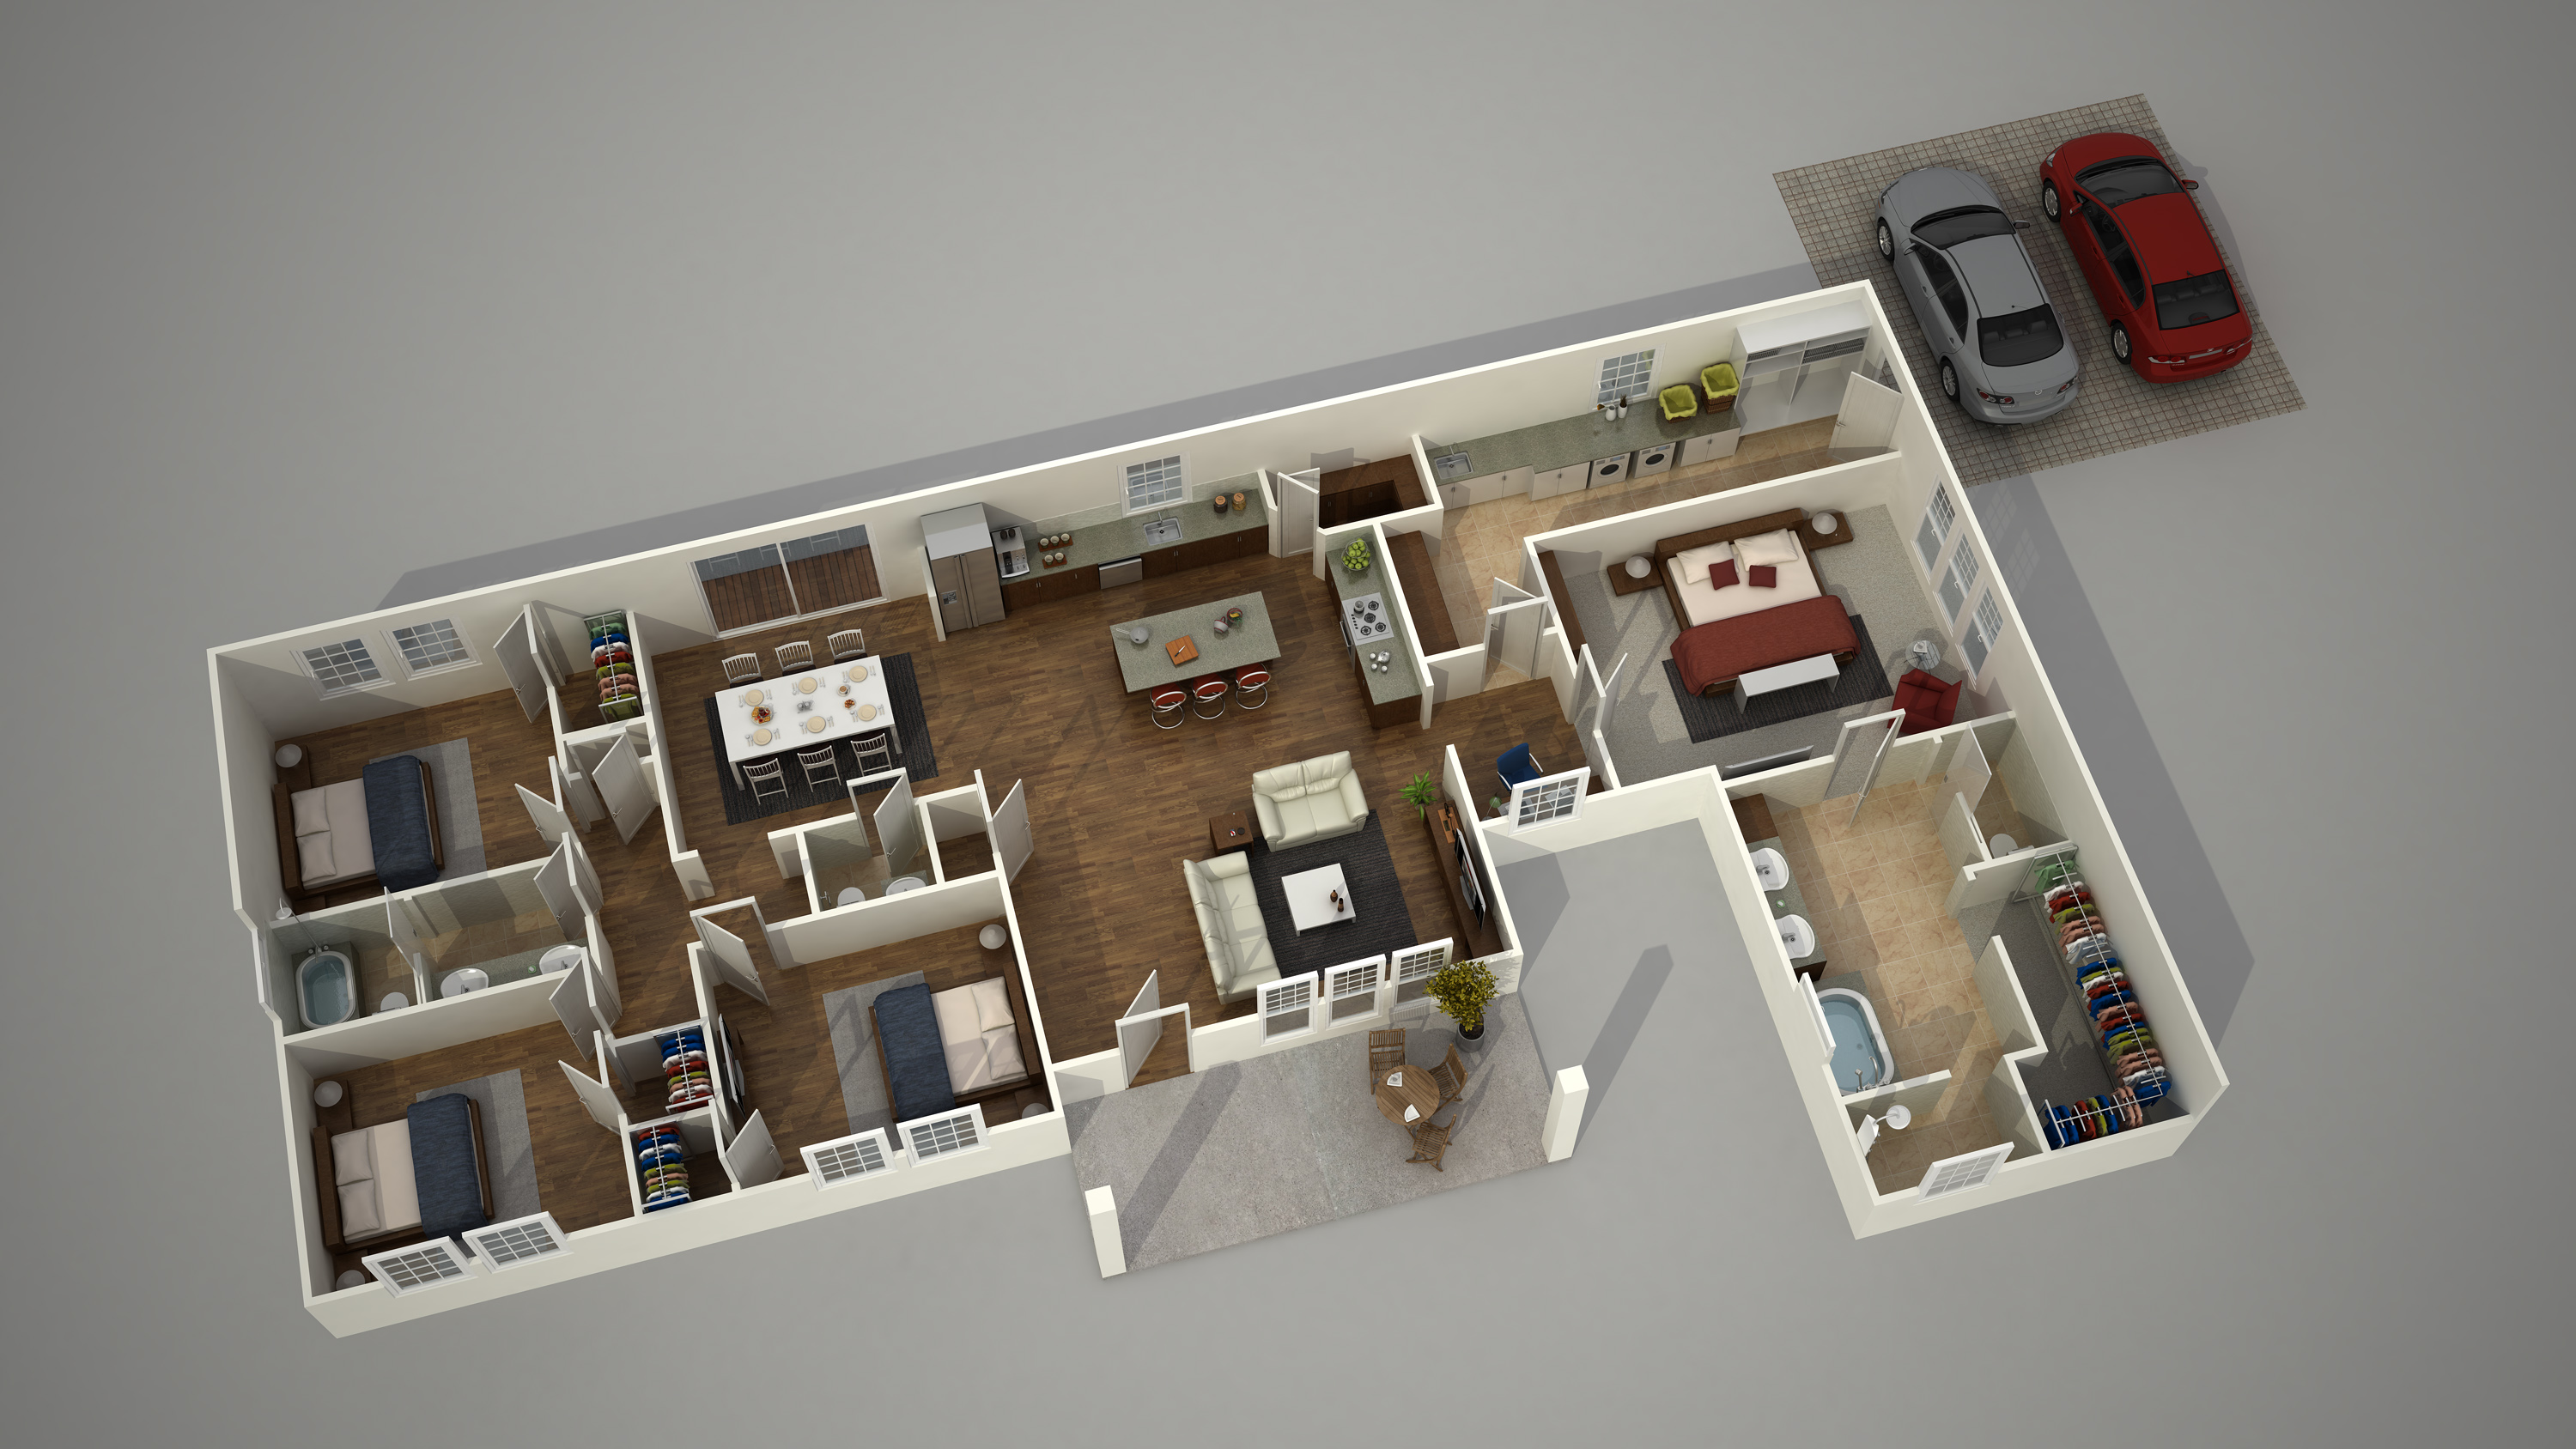 How to create a 3d architecture floor plan rendering Program for floor plans